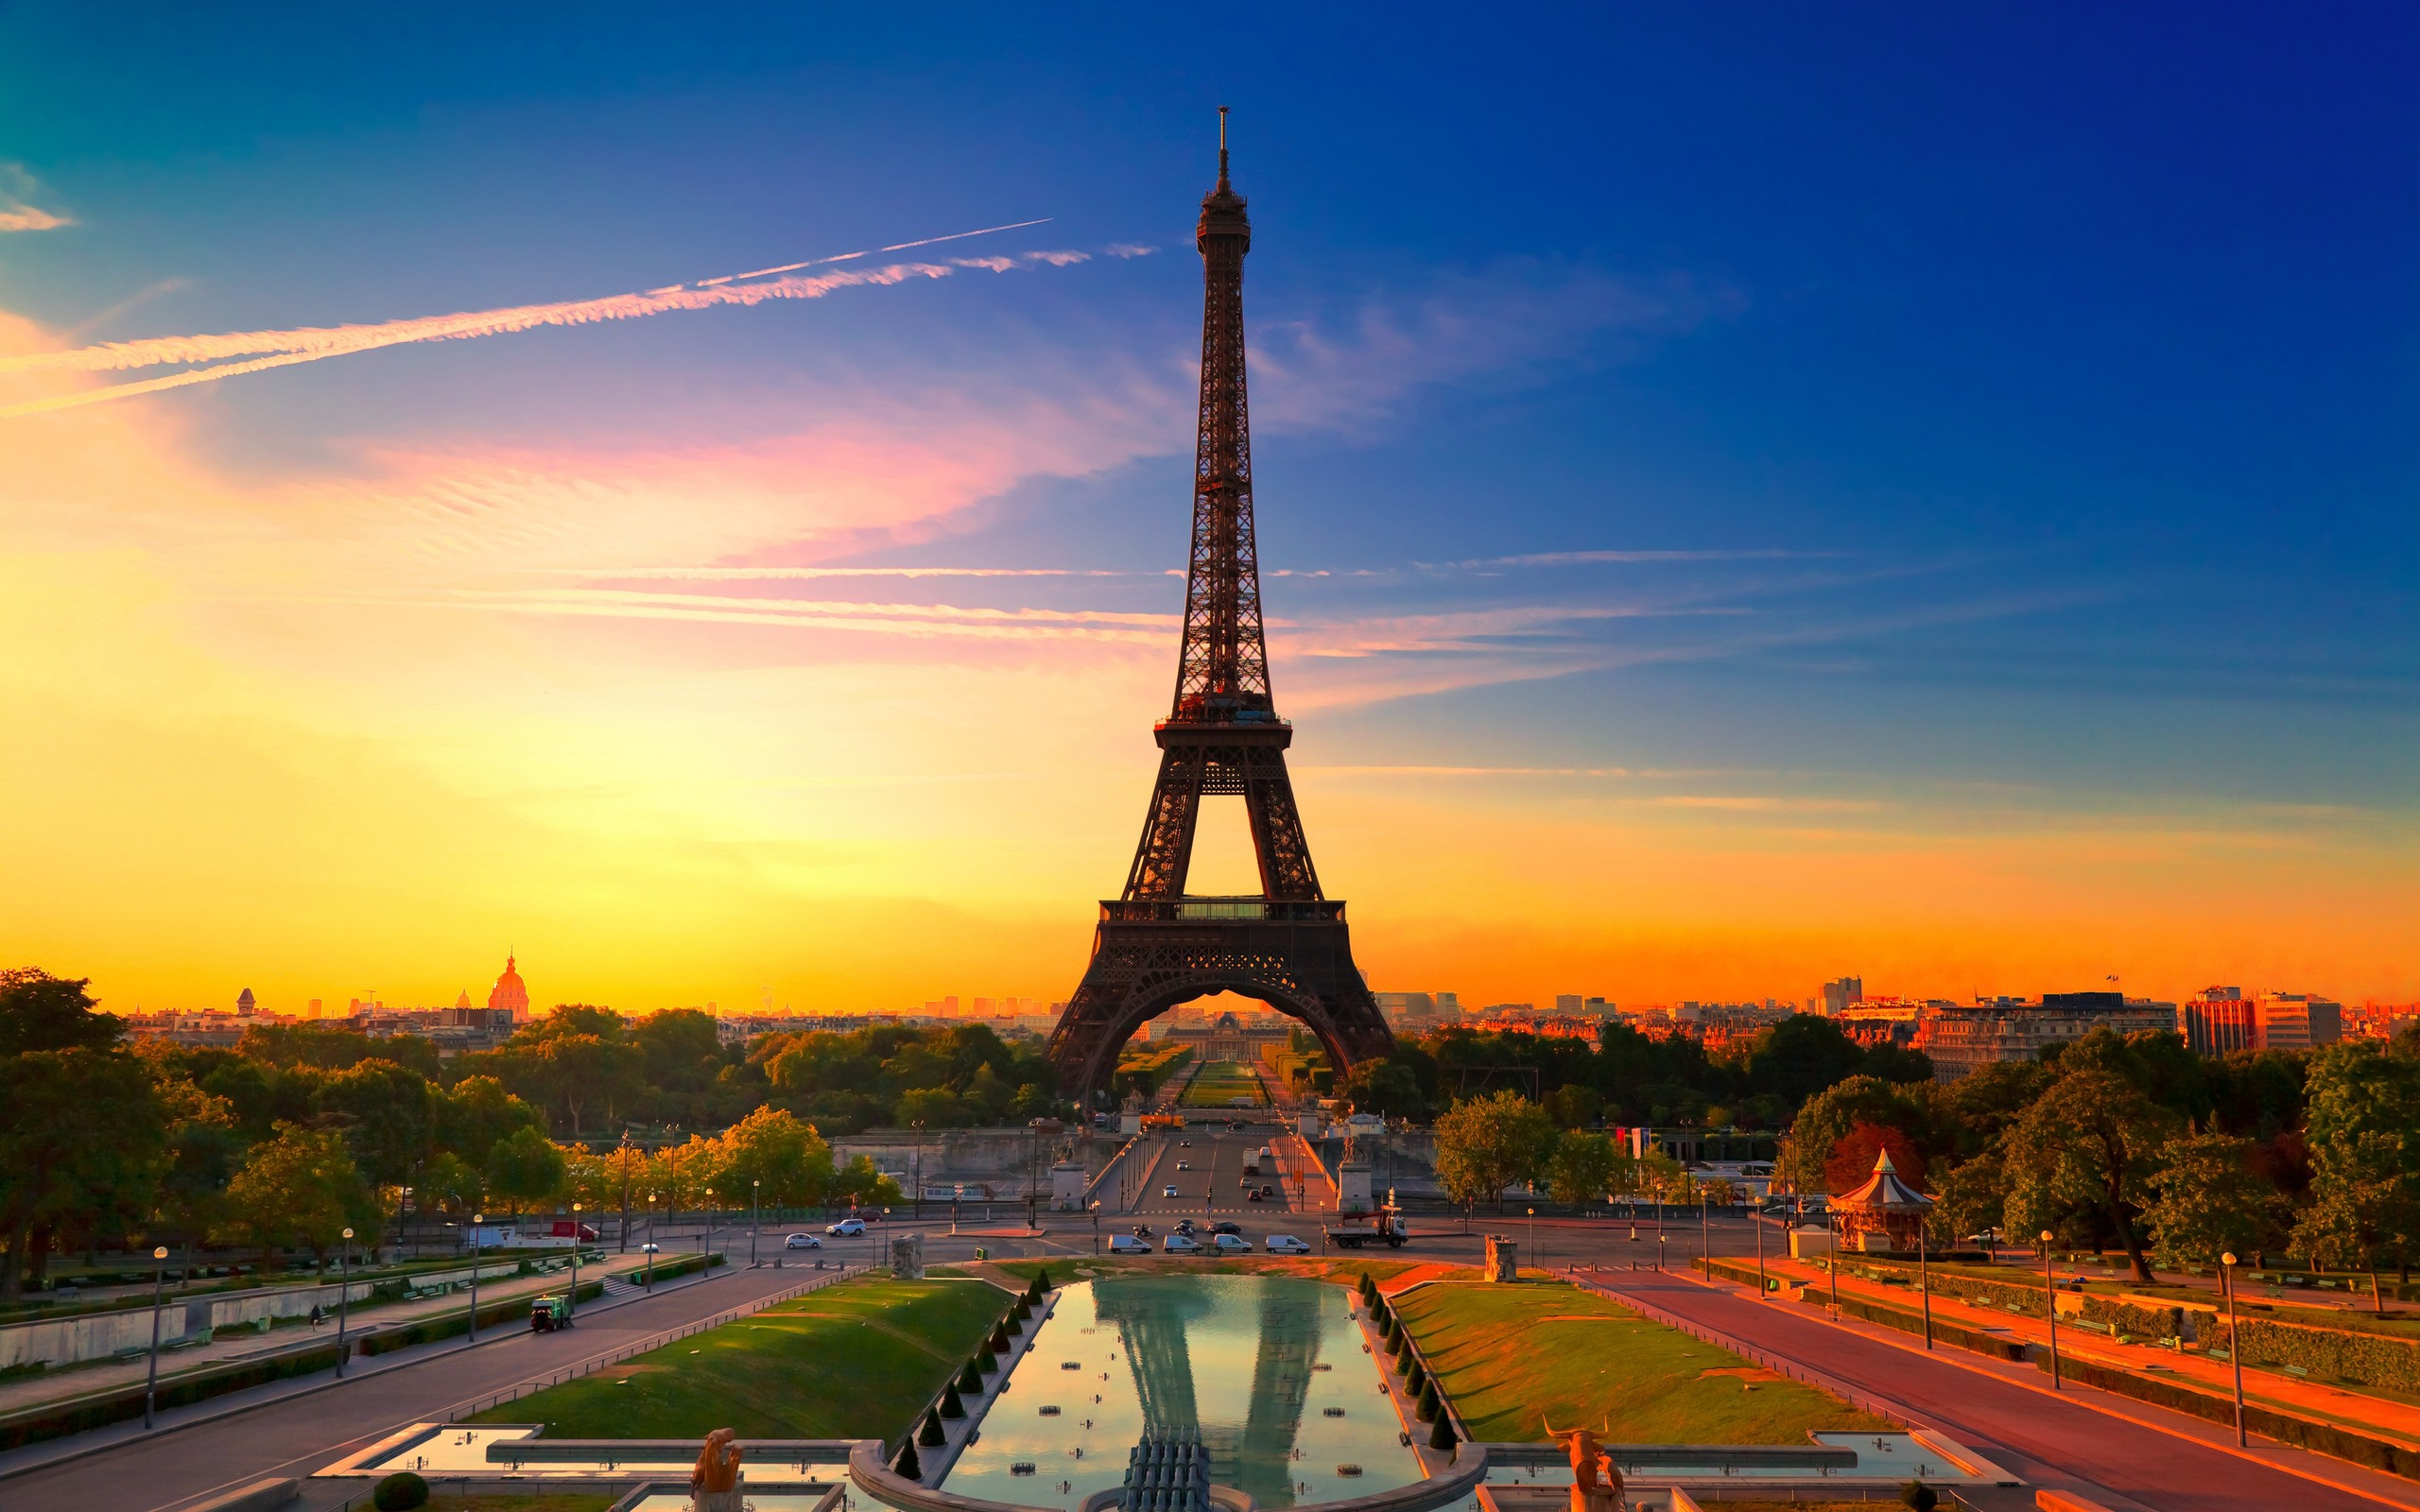 Paris At Sunset wallpaper